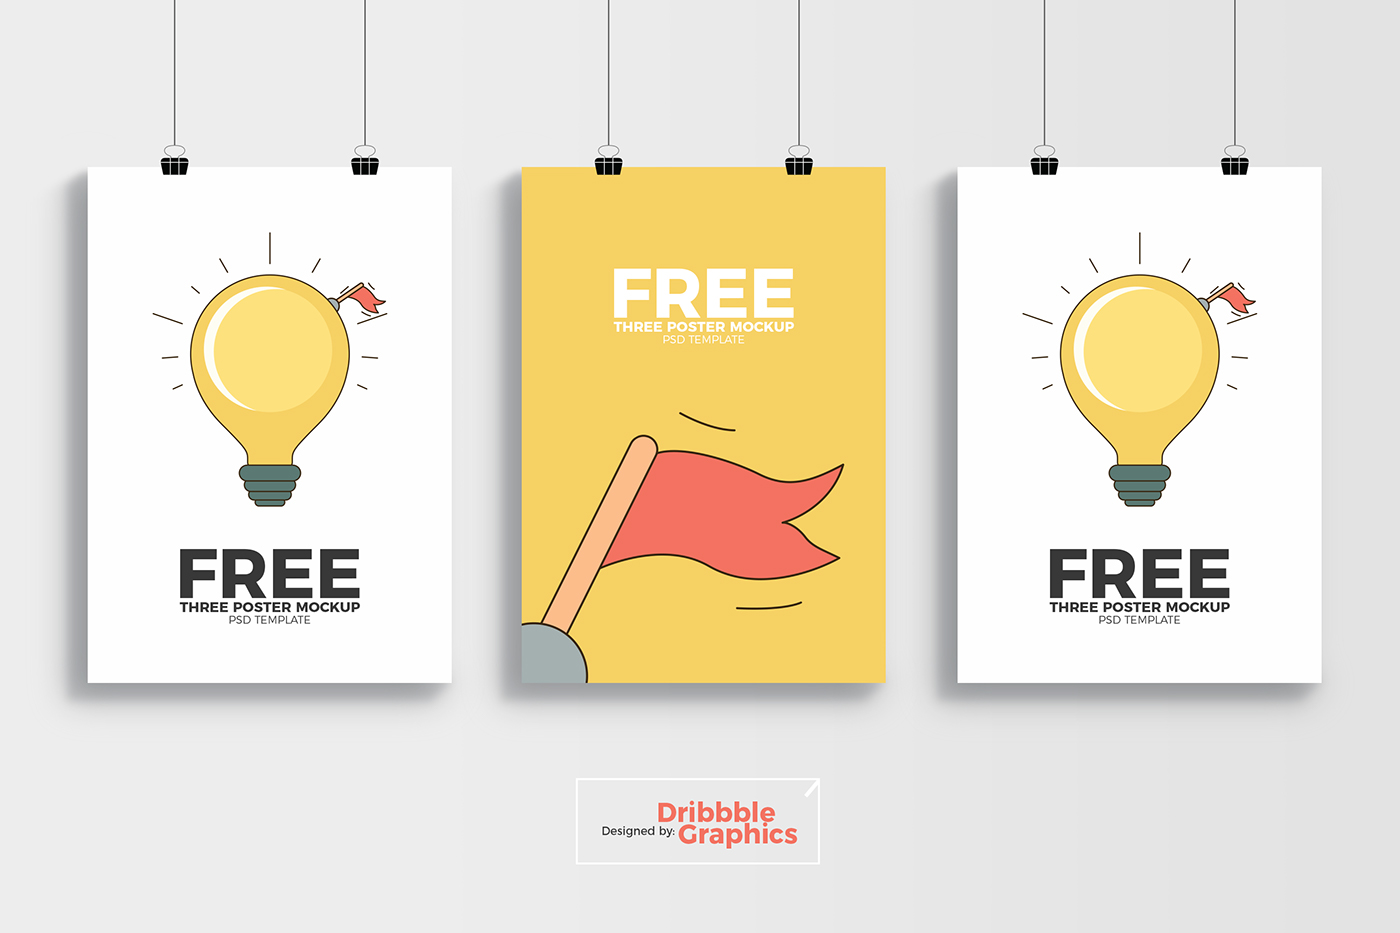 free 3 poster mockup psd template on behance